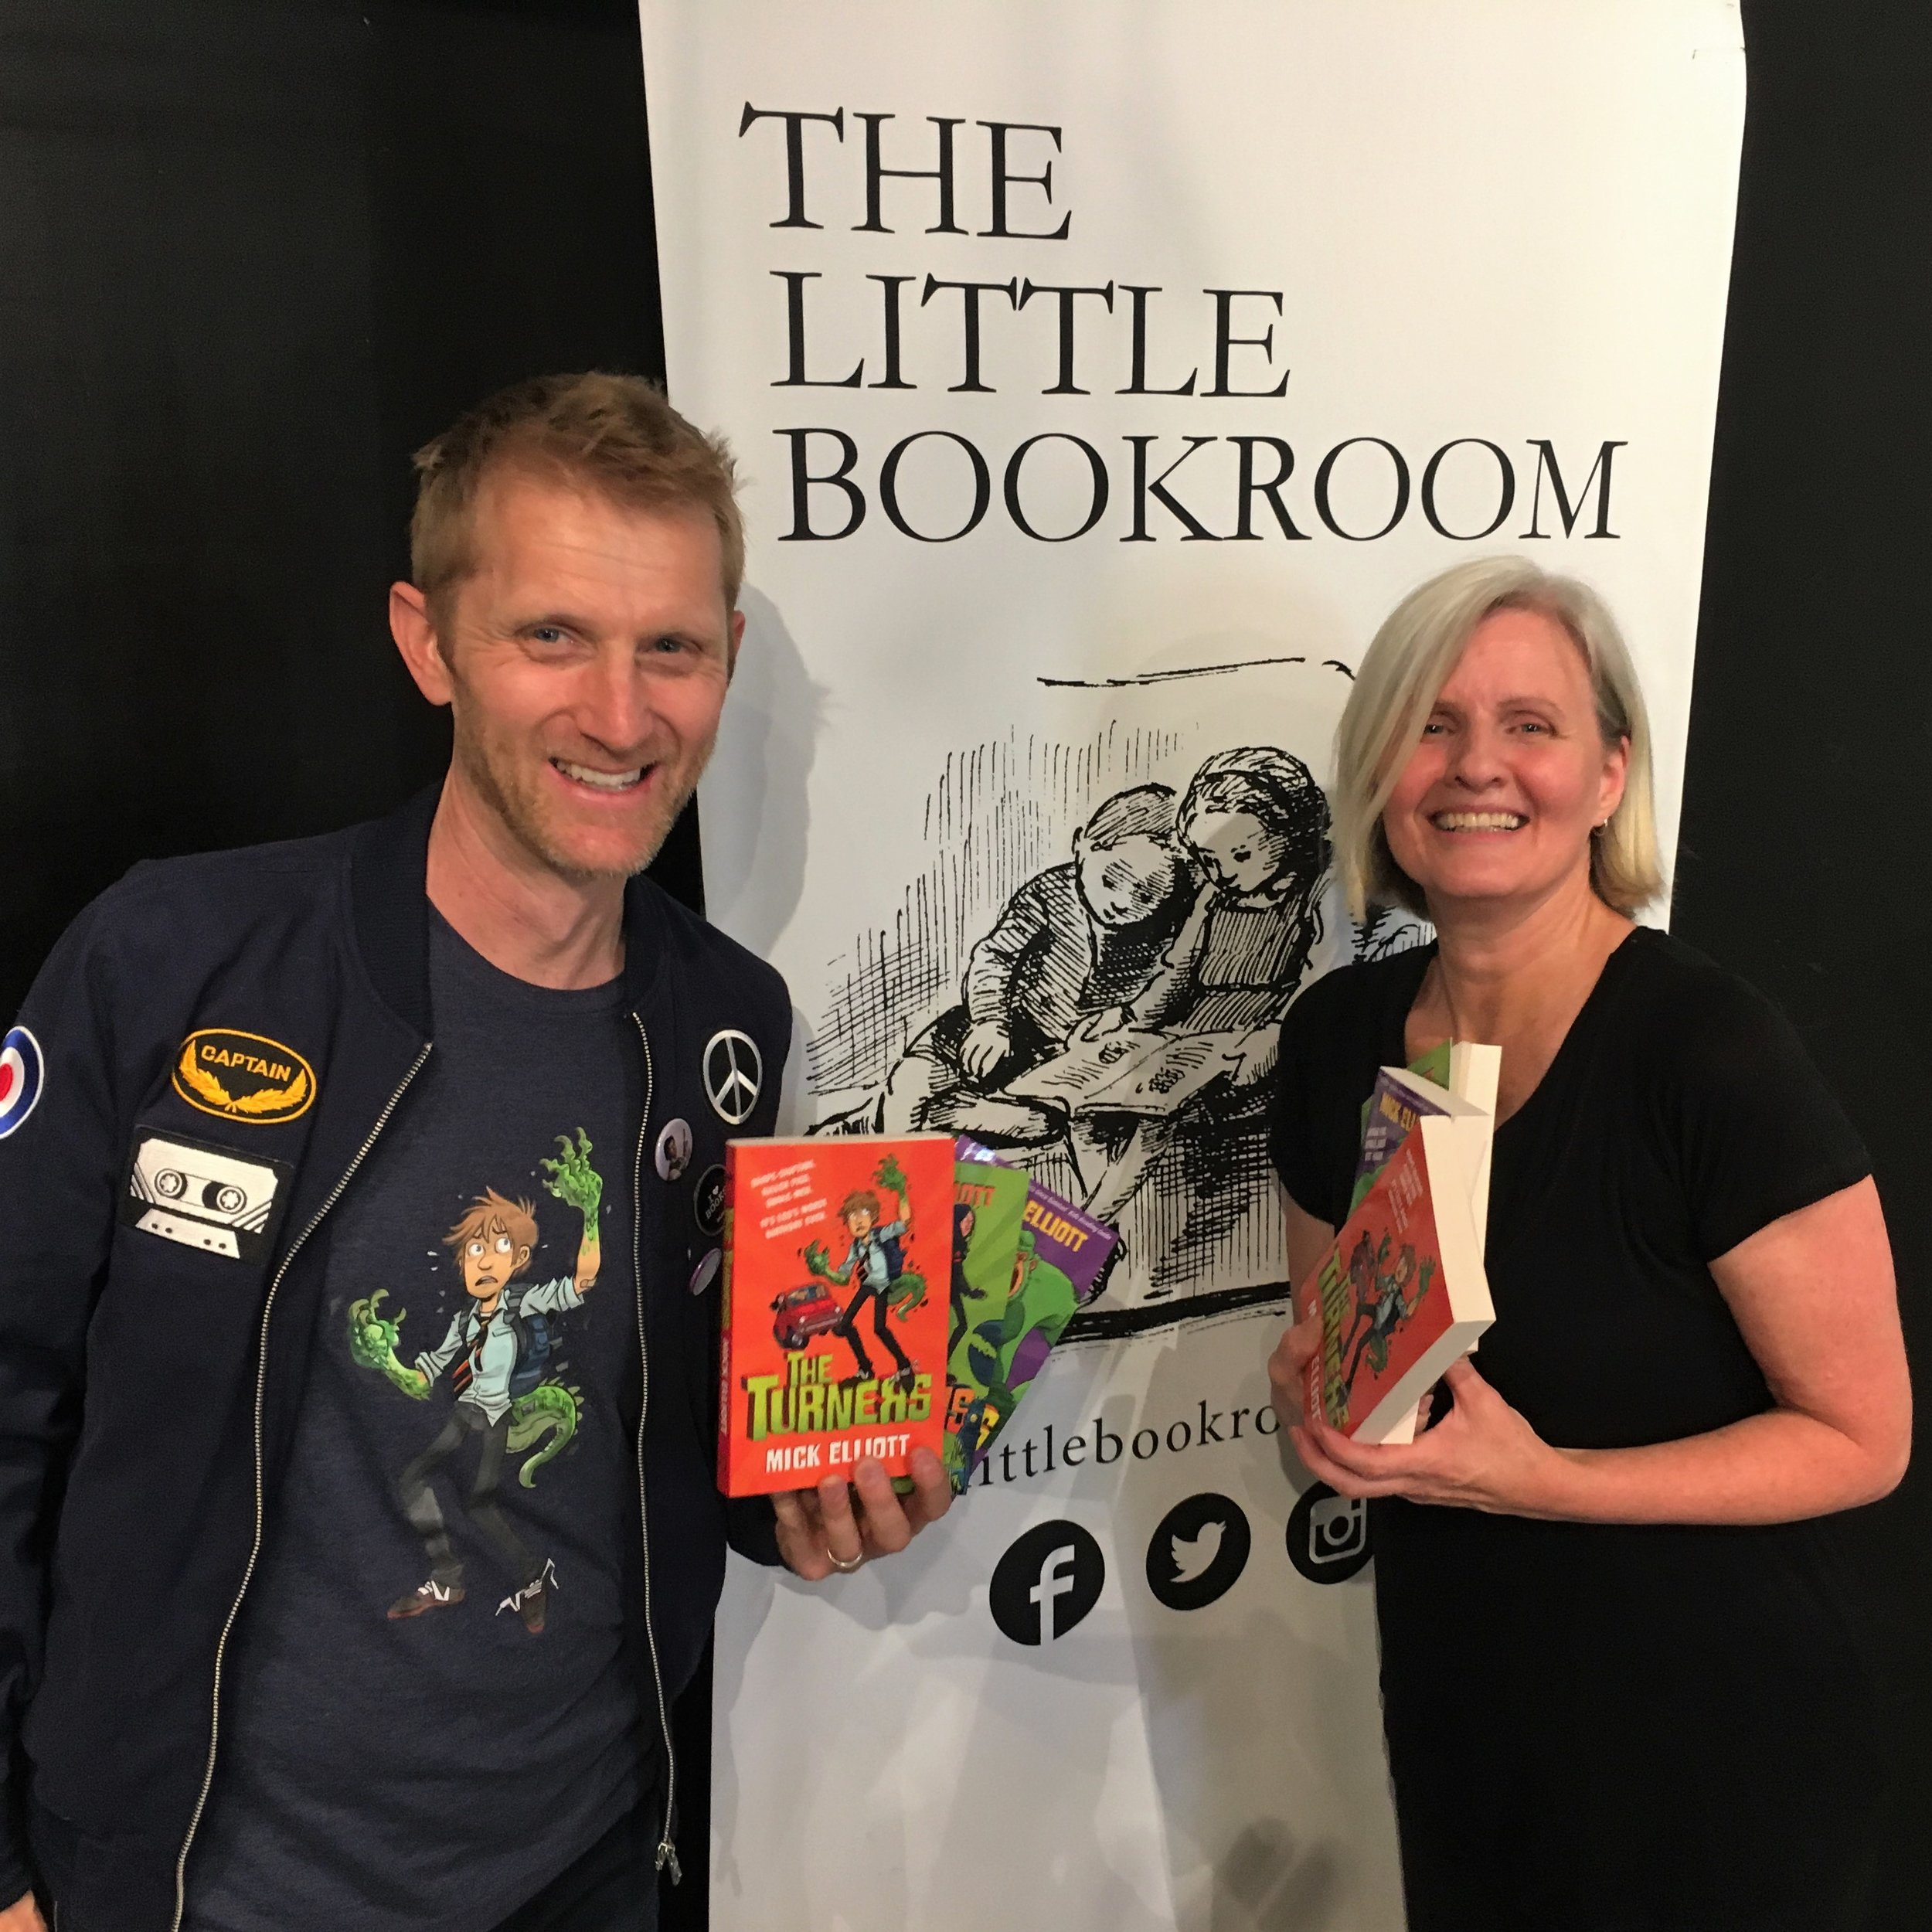 Booksellers do an incredible job promoting the work of local authors, and I was delighted to visit one of my favourites - THE LITTLE BOOKROOM in Melbourne, Victoria.